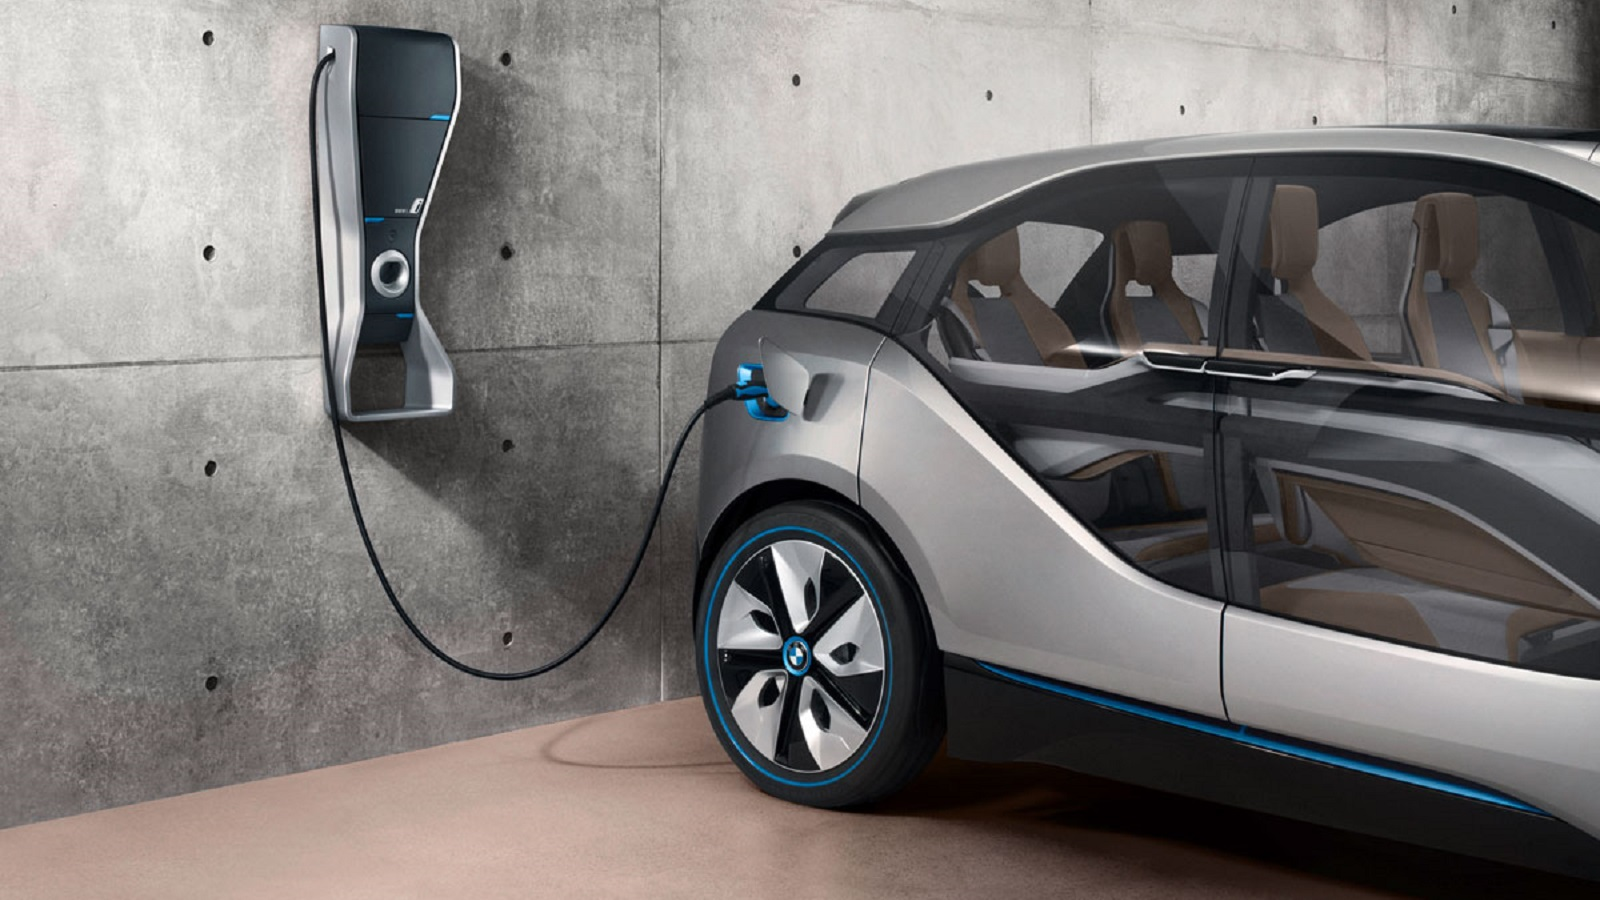 Electric Car Charging Sockets Bmw Introduces Light And Charge Street Lights